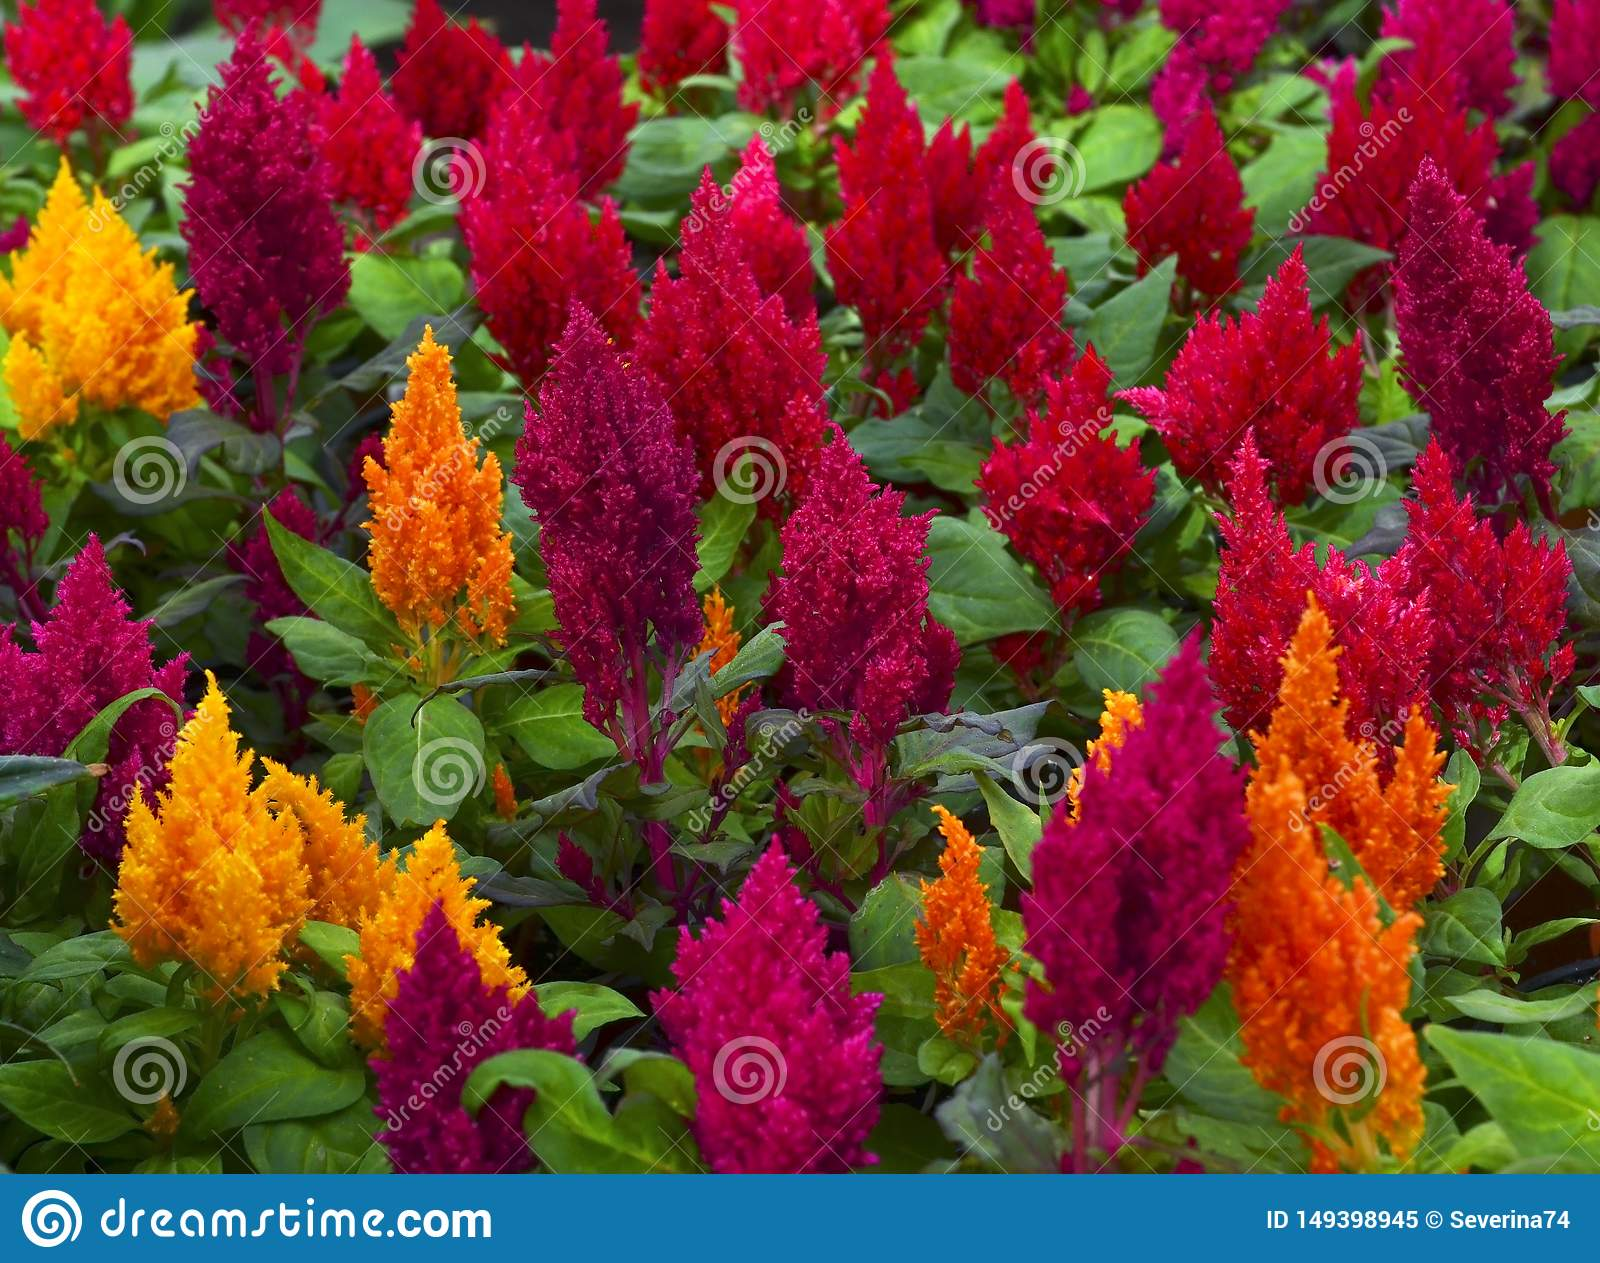 Colorful Celosia Argentea Flowers In The Garden Of Tenerife Canary Islands Spain Blooming Cockscomb Plants Stock Image Image Of Fresh Cockscomb 149398945